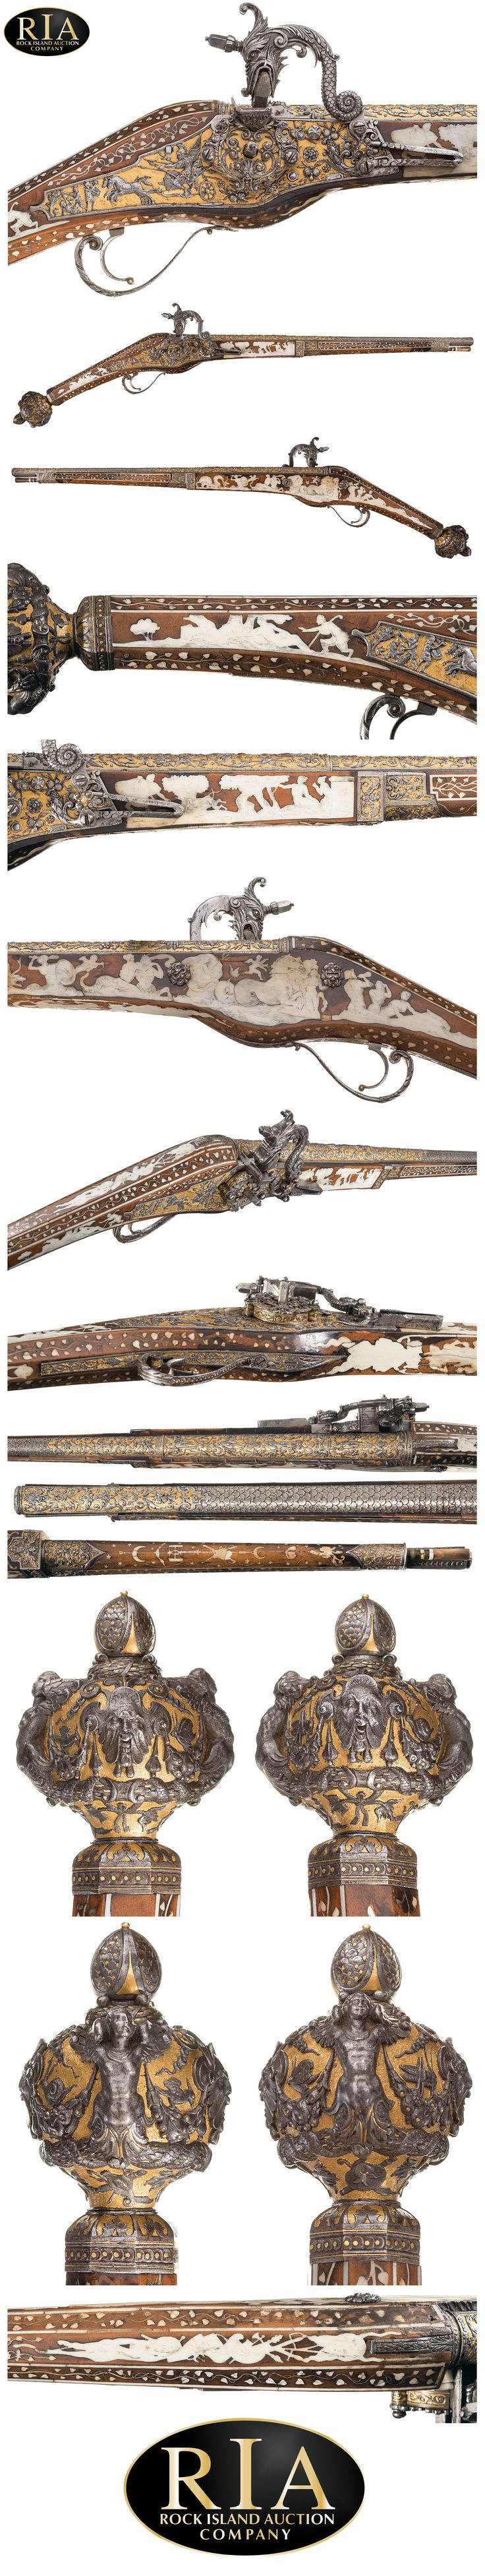 An Extremely Rare and Magnificent Wheellock Holster Pistol with Superbly Chiseled and Gilt Steel Mounts by Emanuel and/or Daniel Sadeler Royal Gunmakers to HRH Duke William of Bavaria Circa 1605